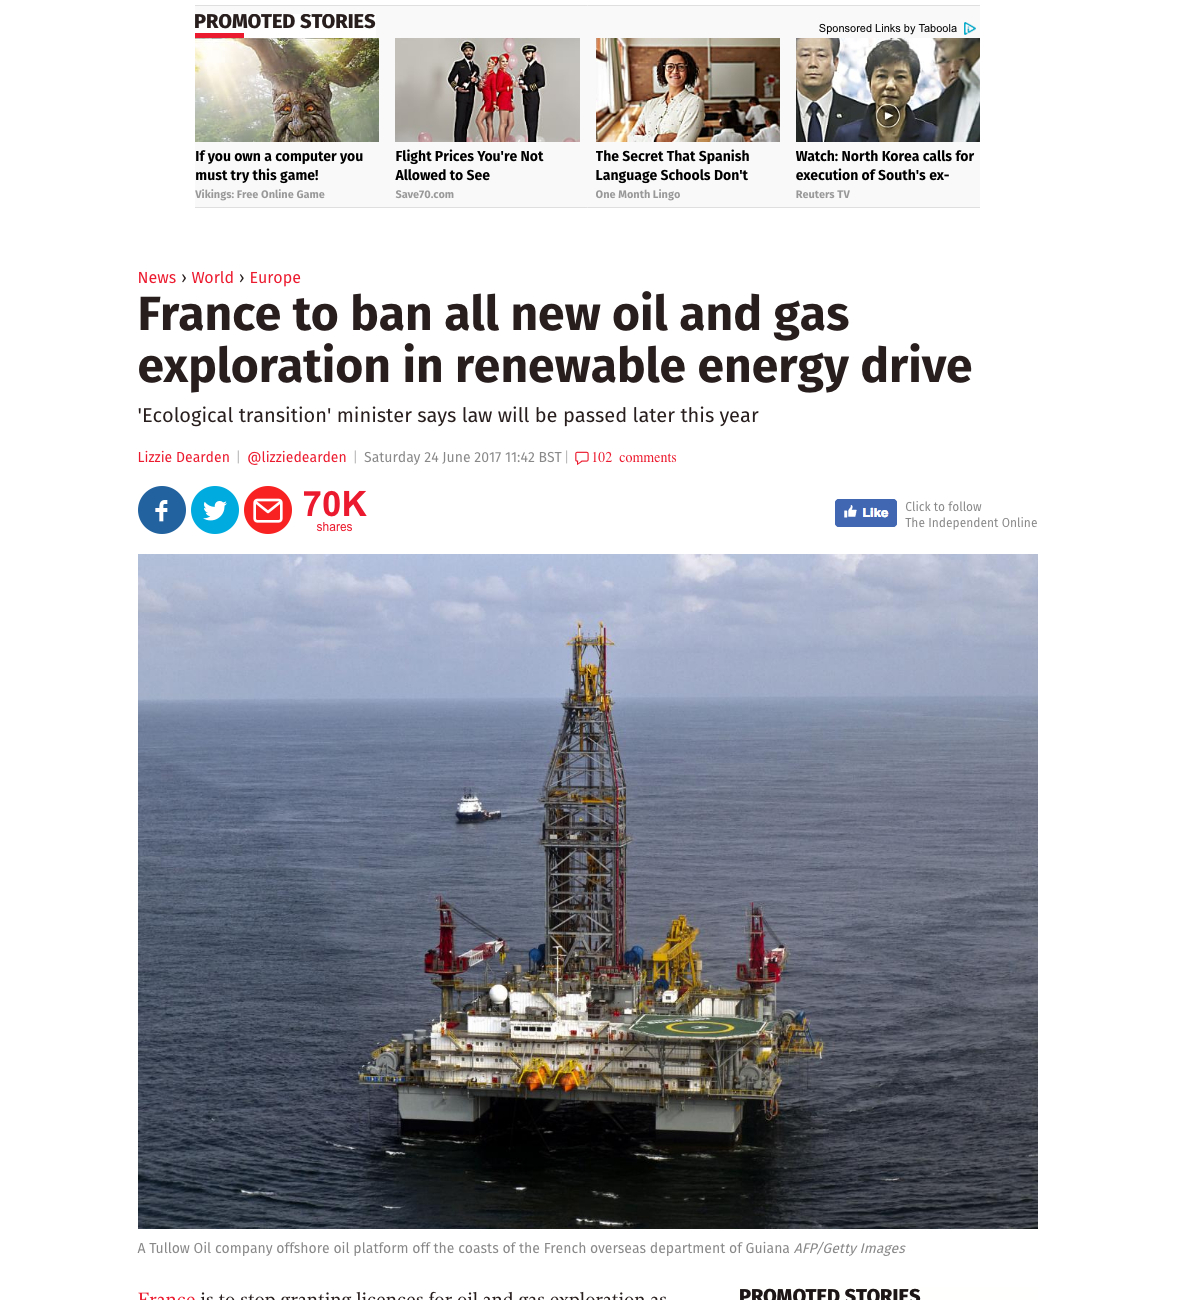 All New Oil And Gas Exploration To Be Banned